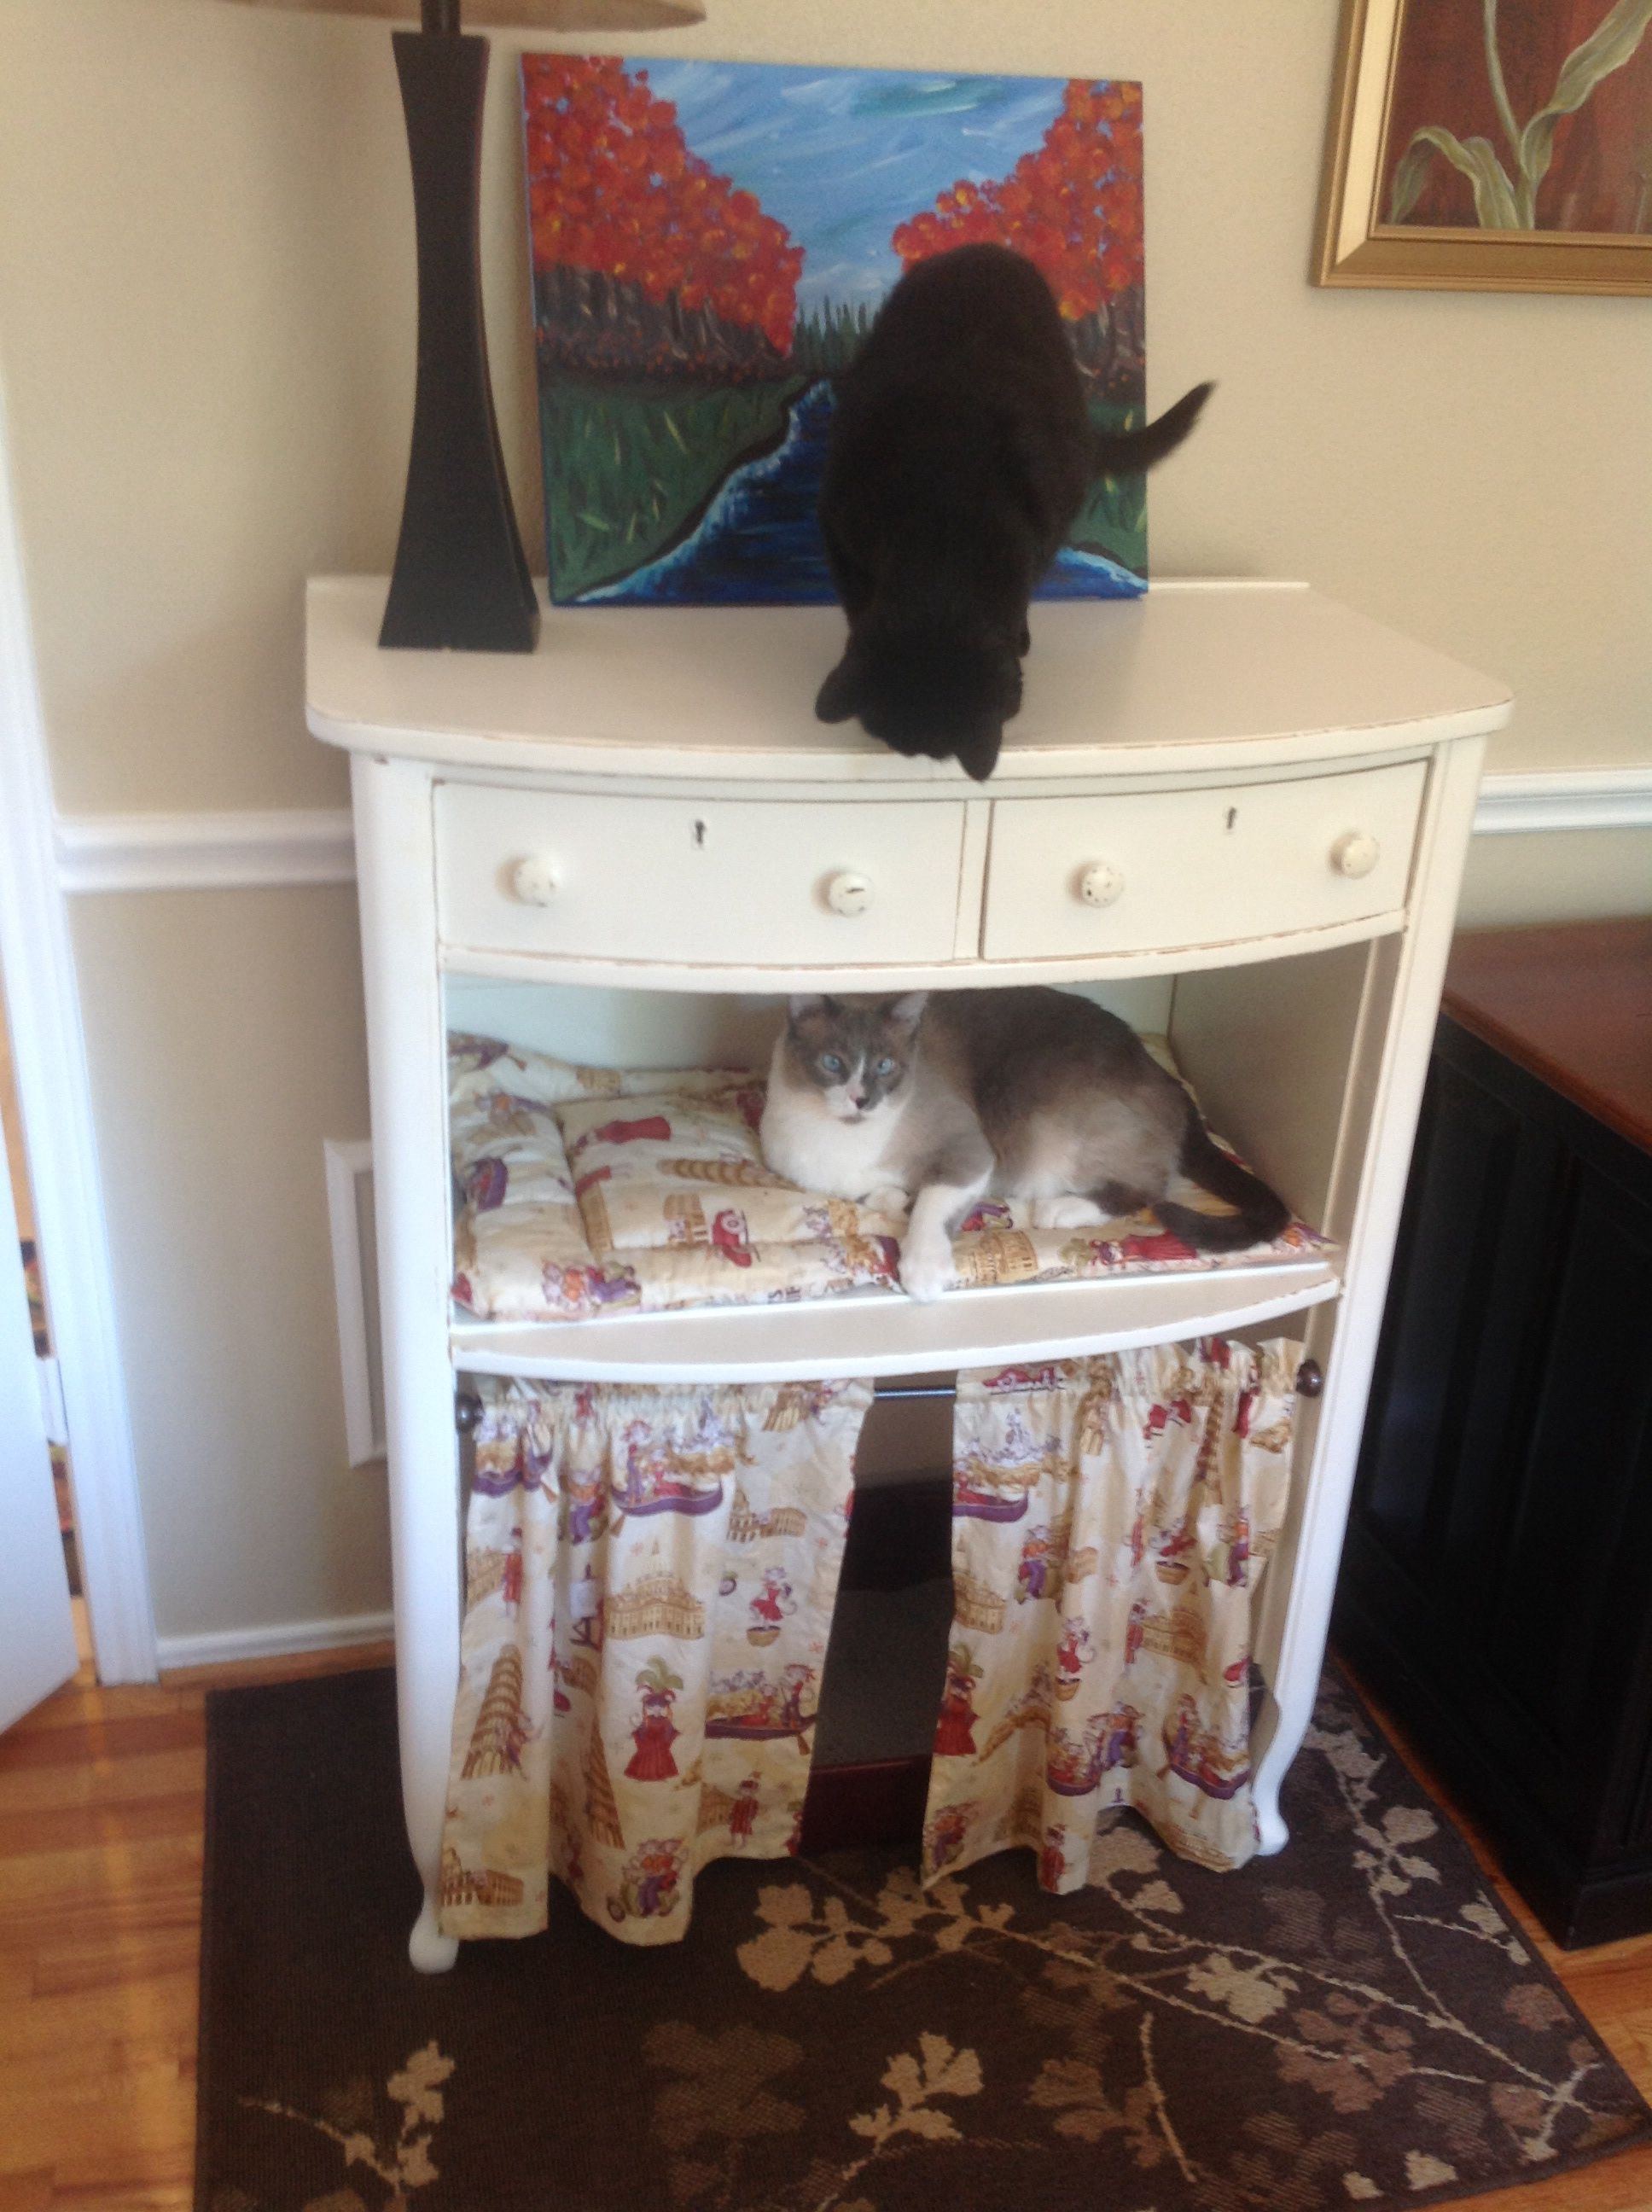 My New Cat Condo This Is A Dresser Repurposed Into Litter Box Disguise Was An Old Chest Of Drawers All Removed Except The Top